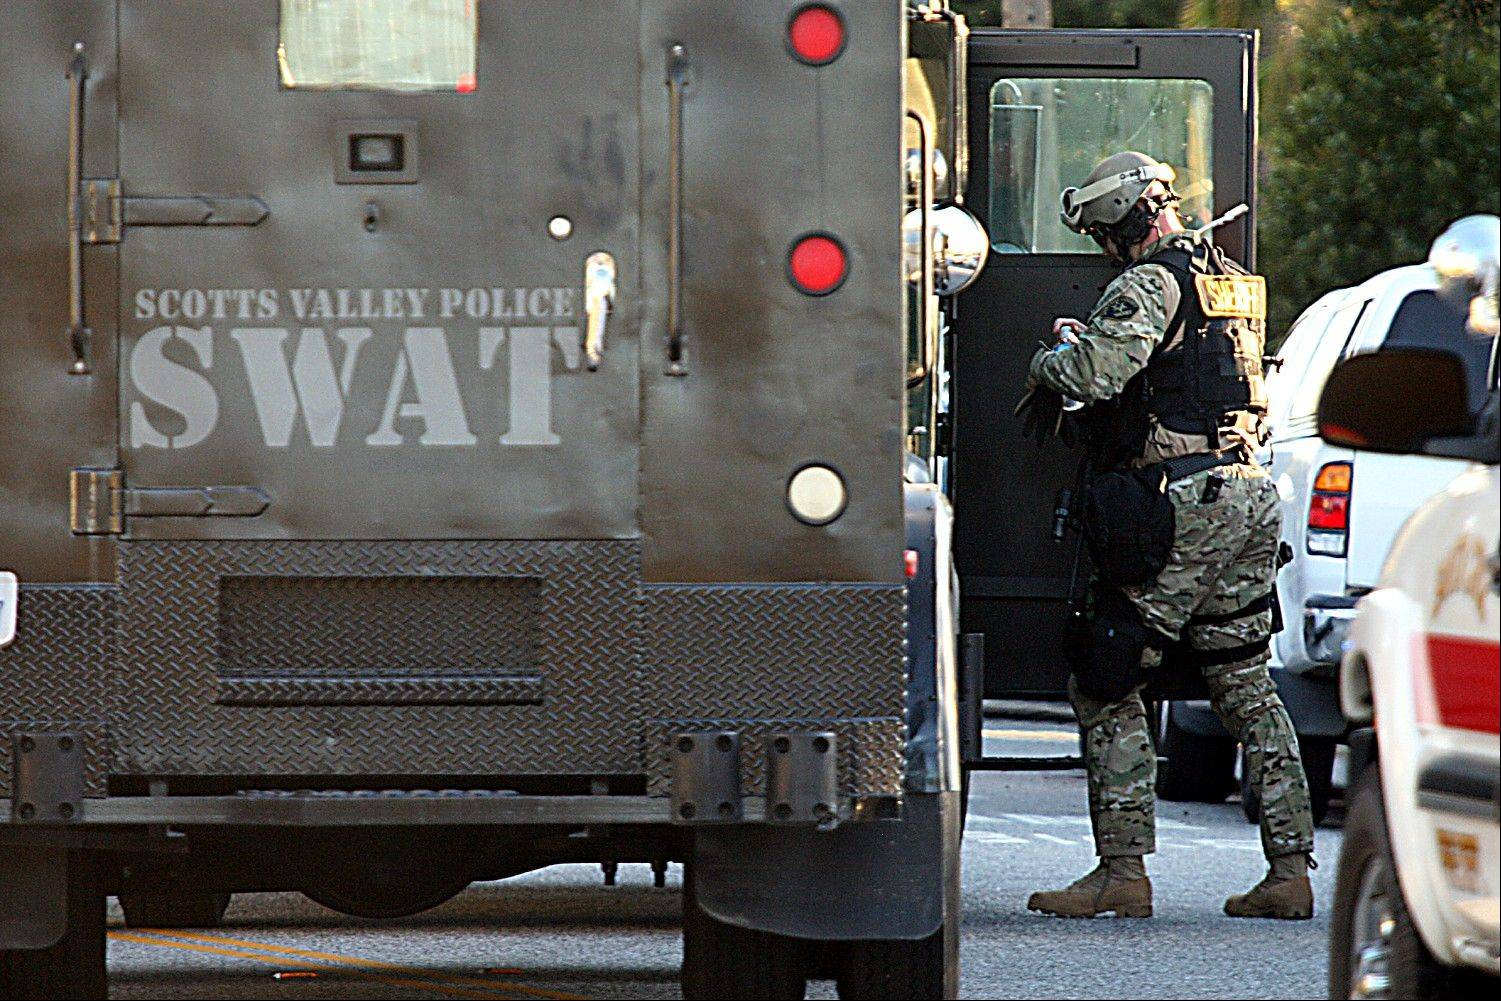 Santa Cruz County Sheriff's Deputy member of the SWAT team gears up to enter the shooting scene Tuesday.